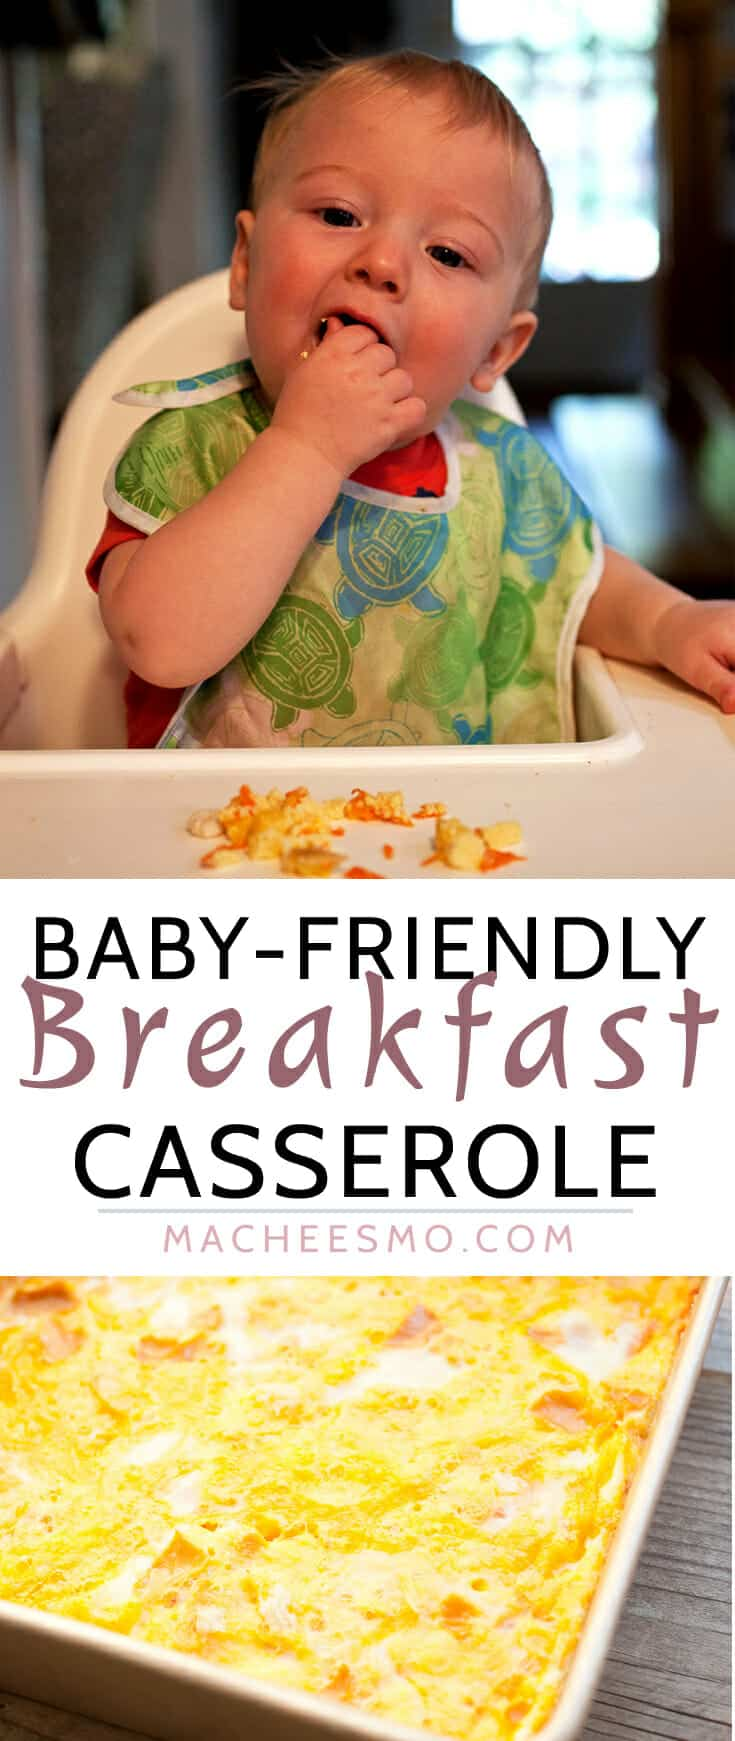 Baby-Friendly Breakfast Casserole: Feeding a toddler in the morning can be tricky. This simple shredded vegetable casserole is perfect for little ones. It's easy to heat up and they can pick it up on their own! Baby approved! | macheesmo.com